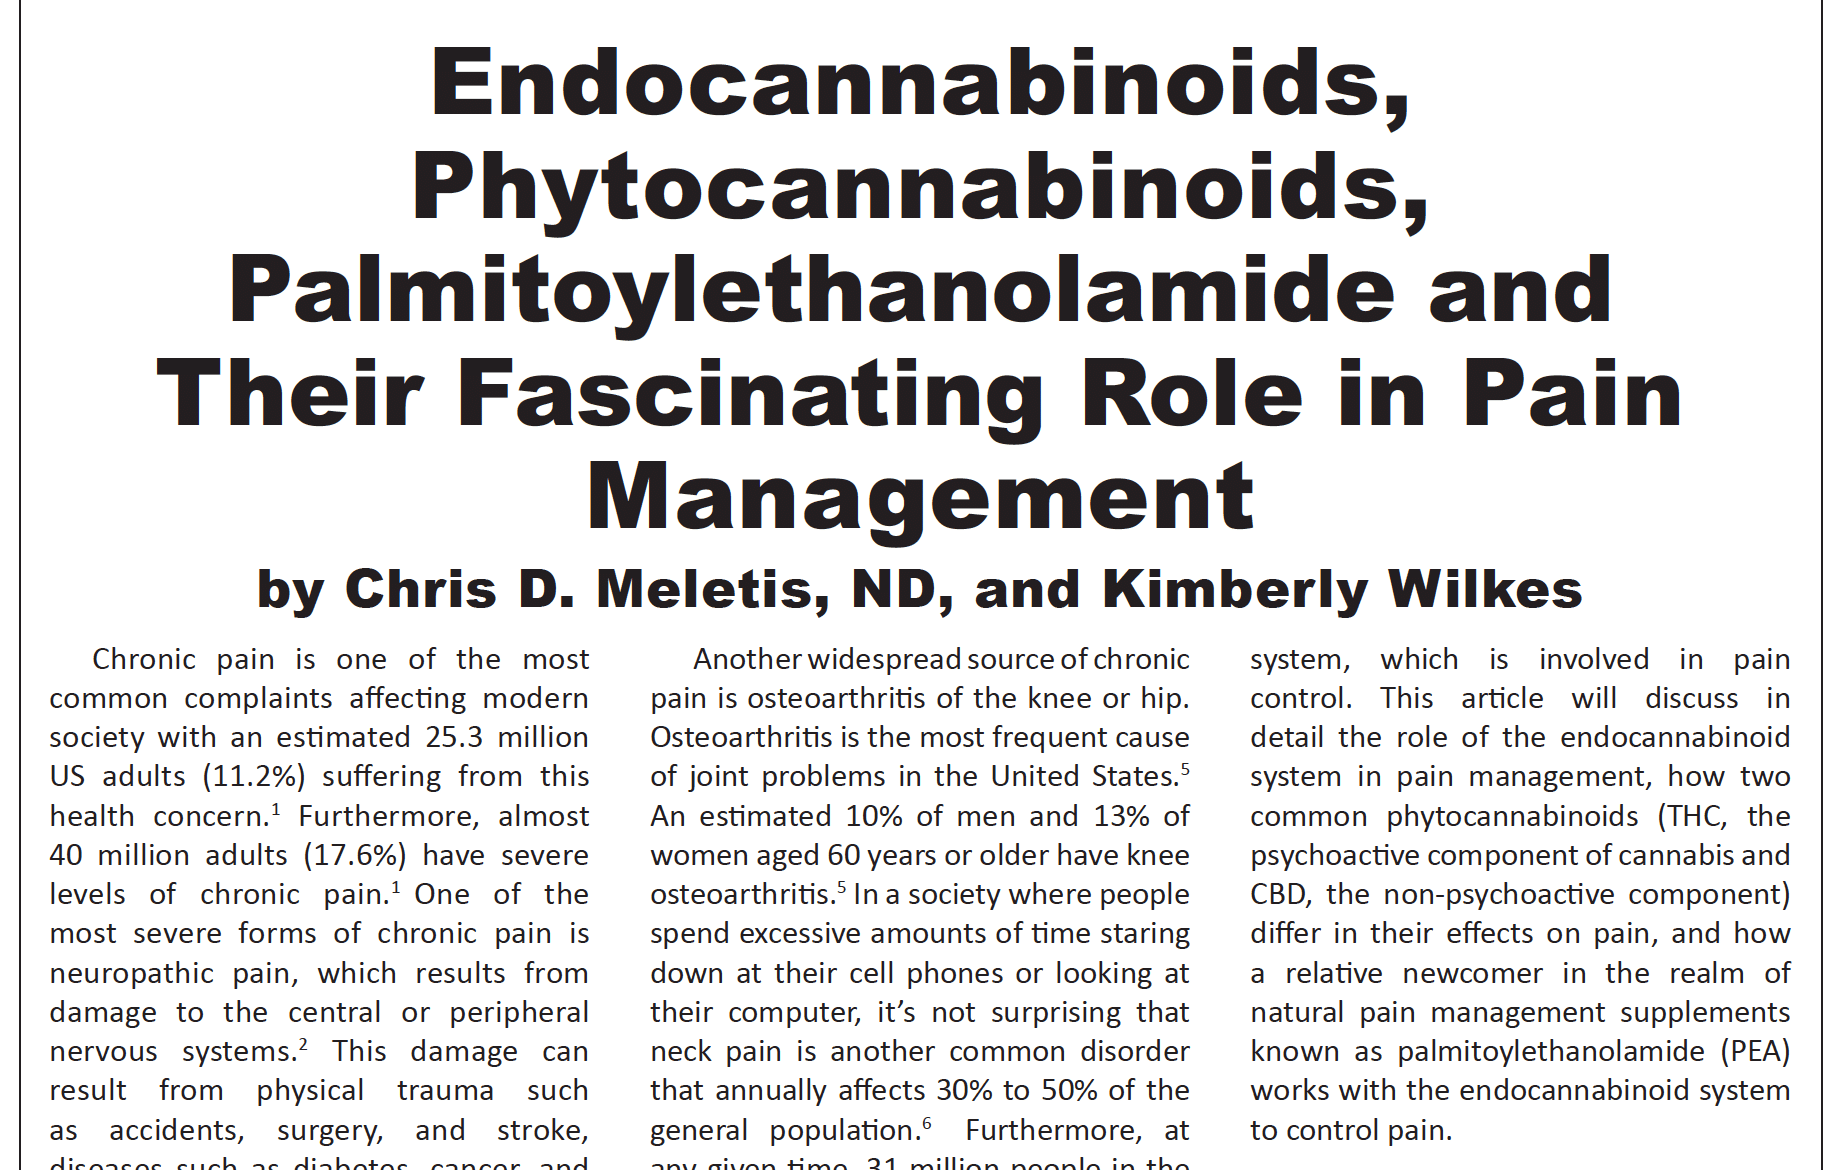 Endocannabinoids, Phytocannabinoids, Palmitoylethanolamide and Their Fascinating Role in Pain Management